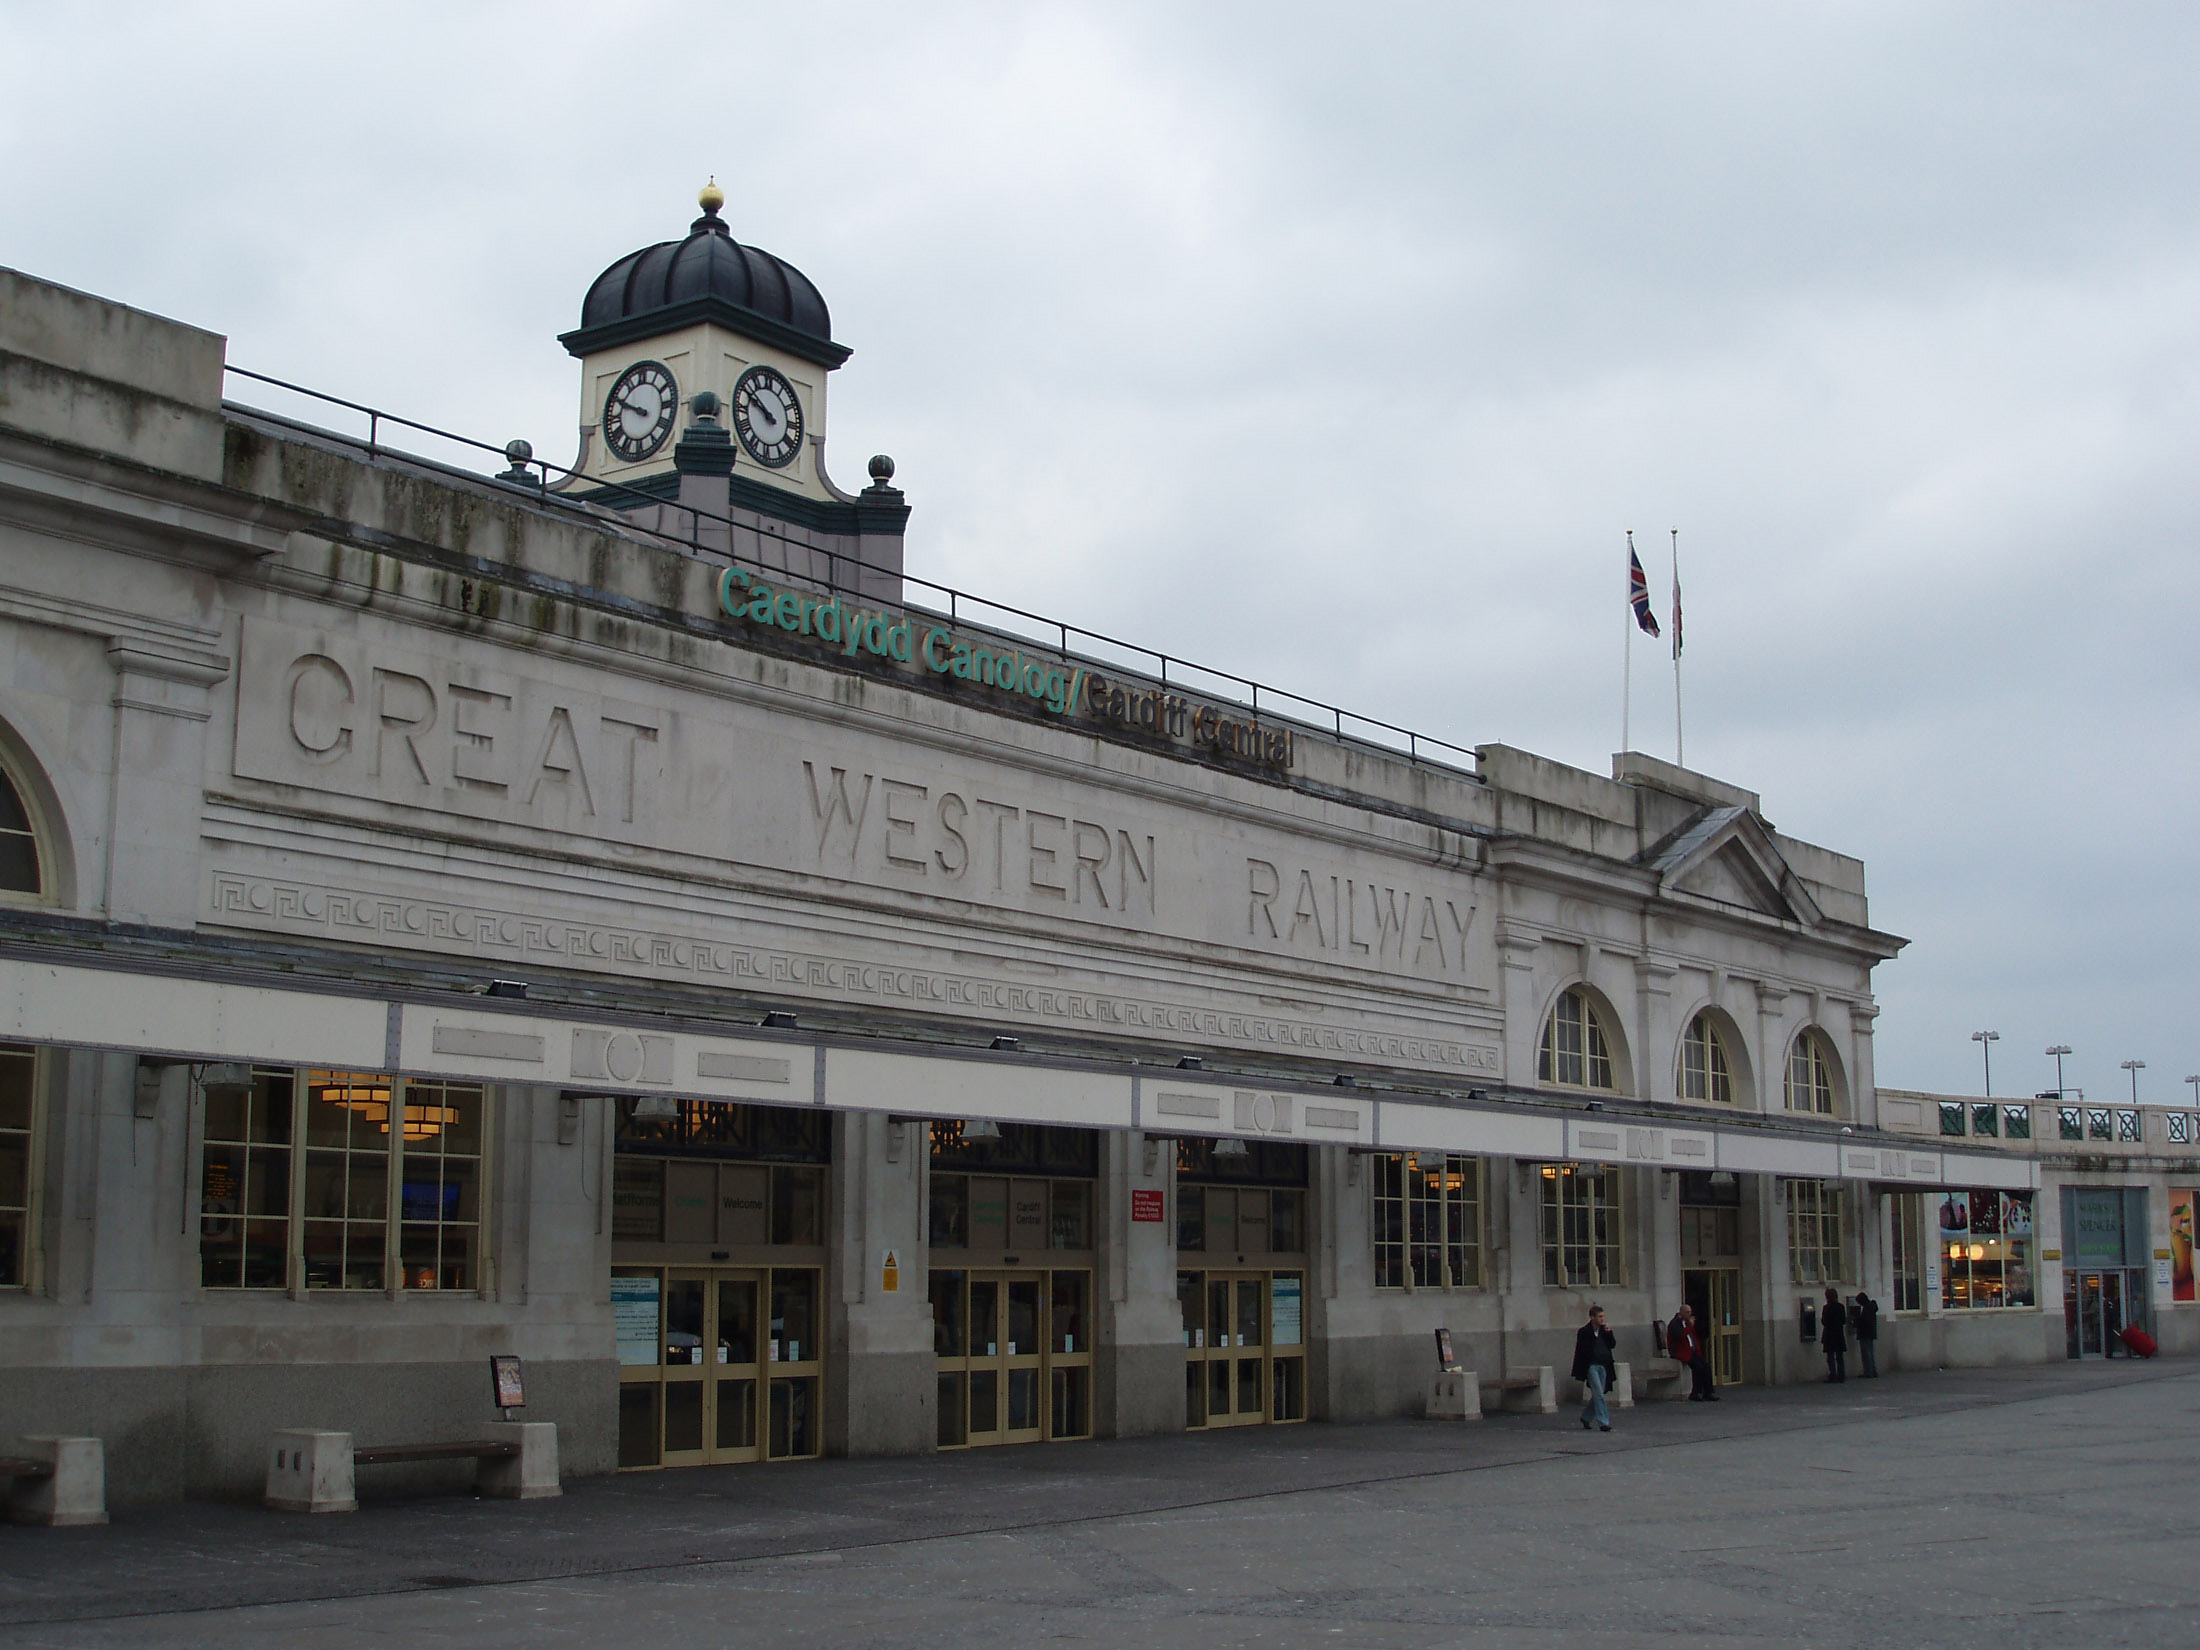 Front View of the main Building at Cardiff Central Station, Wales